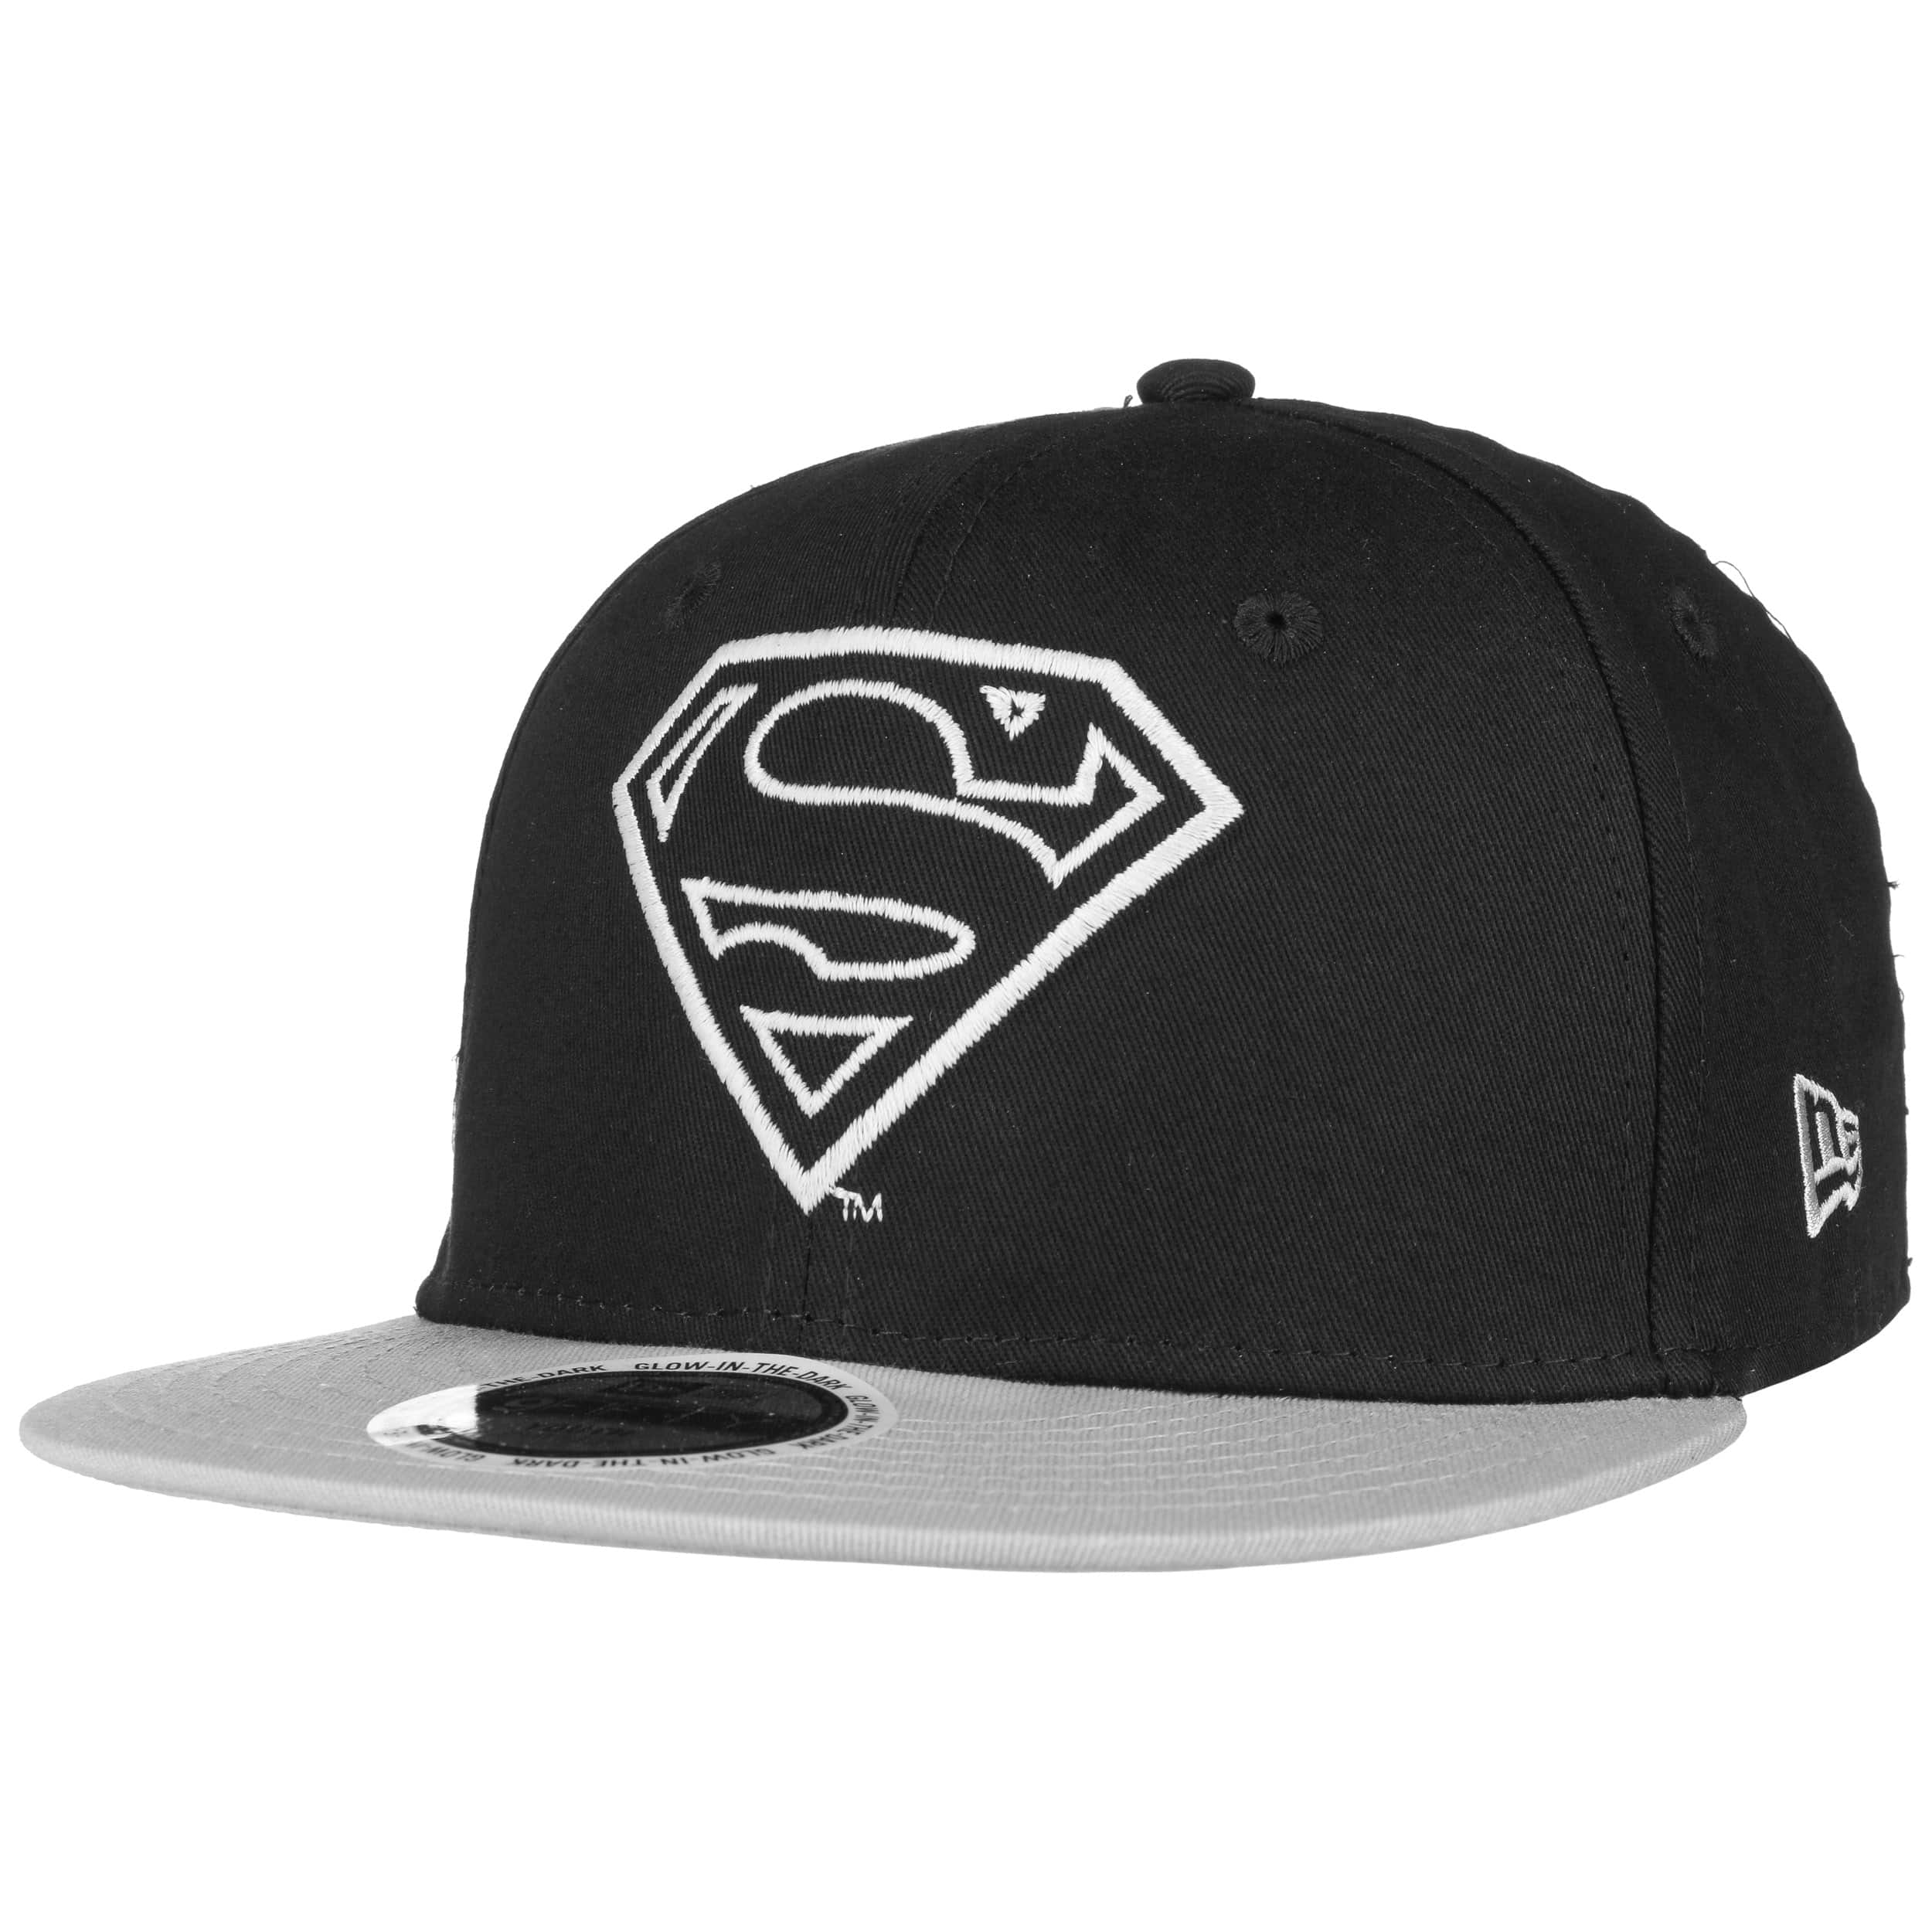 ... Cappellino 9Fifty Bambini Glow Superman by New Era - nero 6 6a61d61eef55